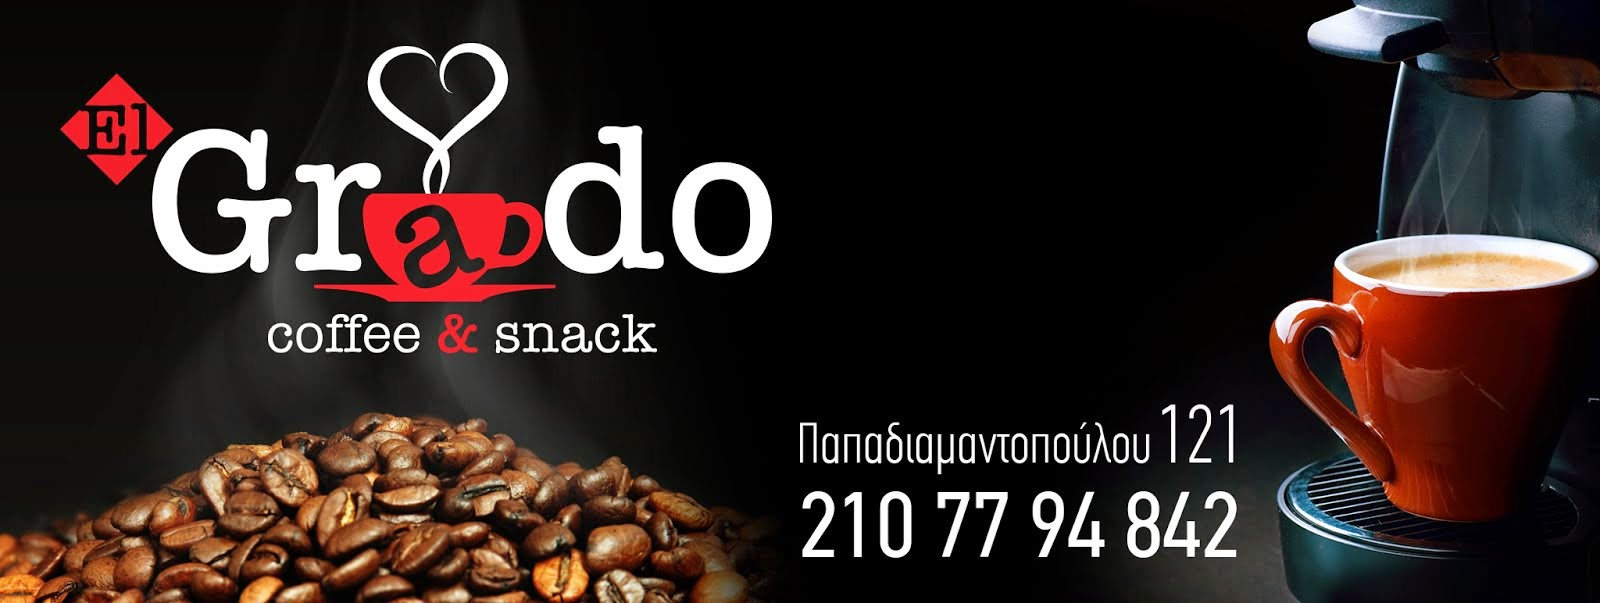 El Grado coffee & snack